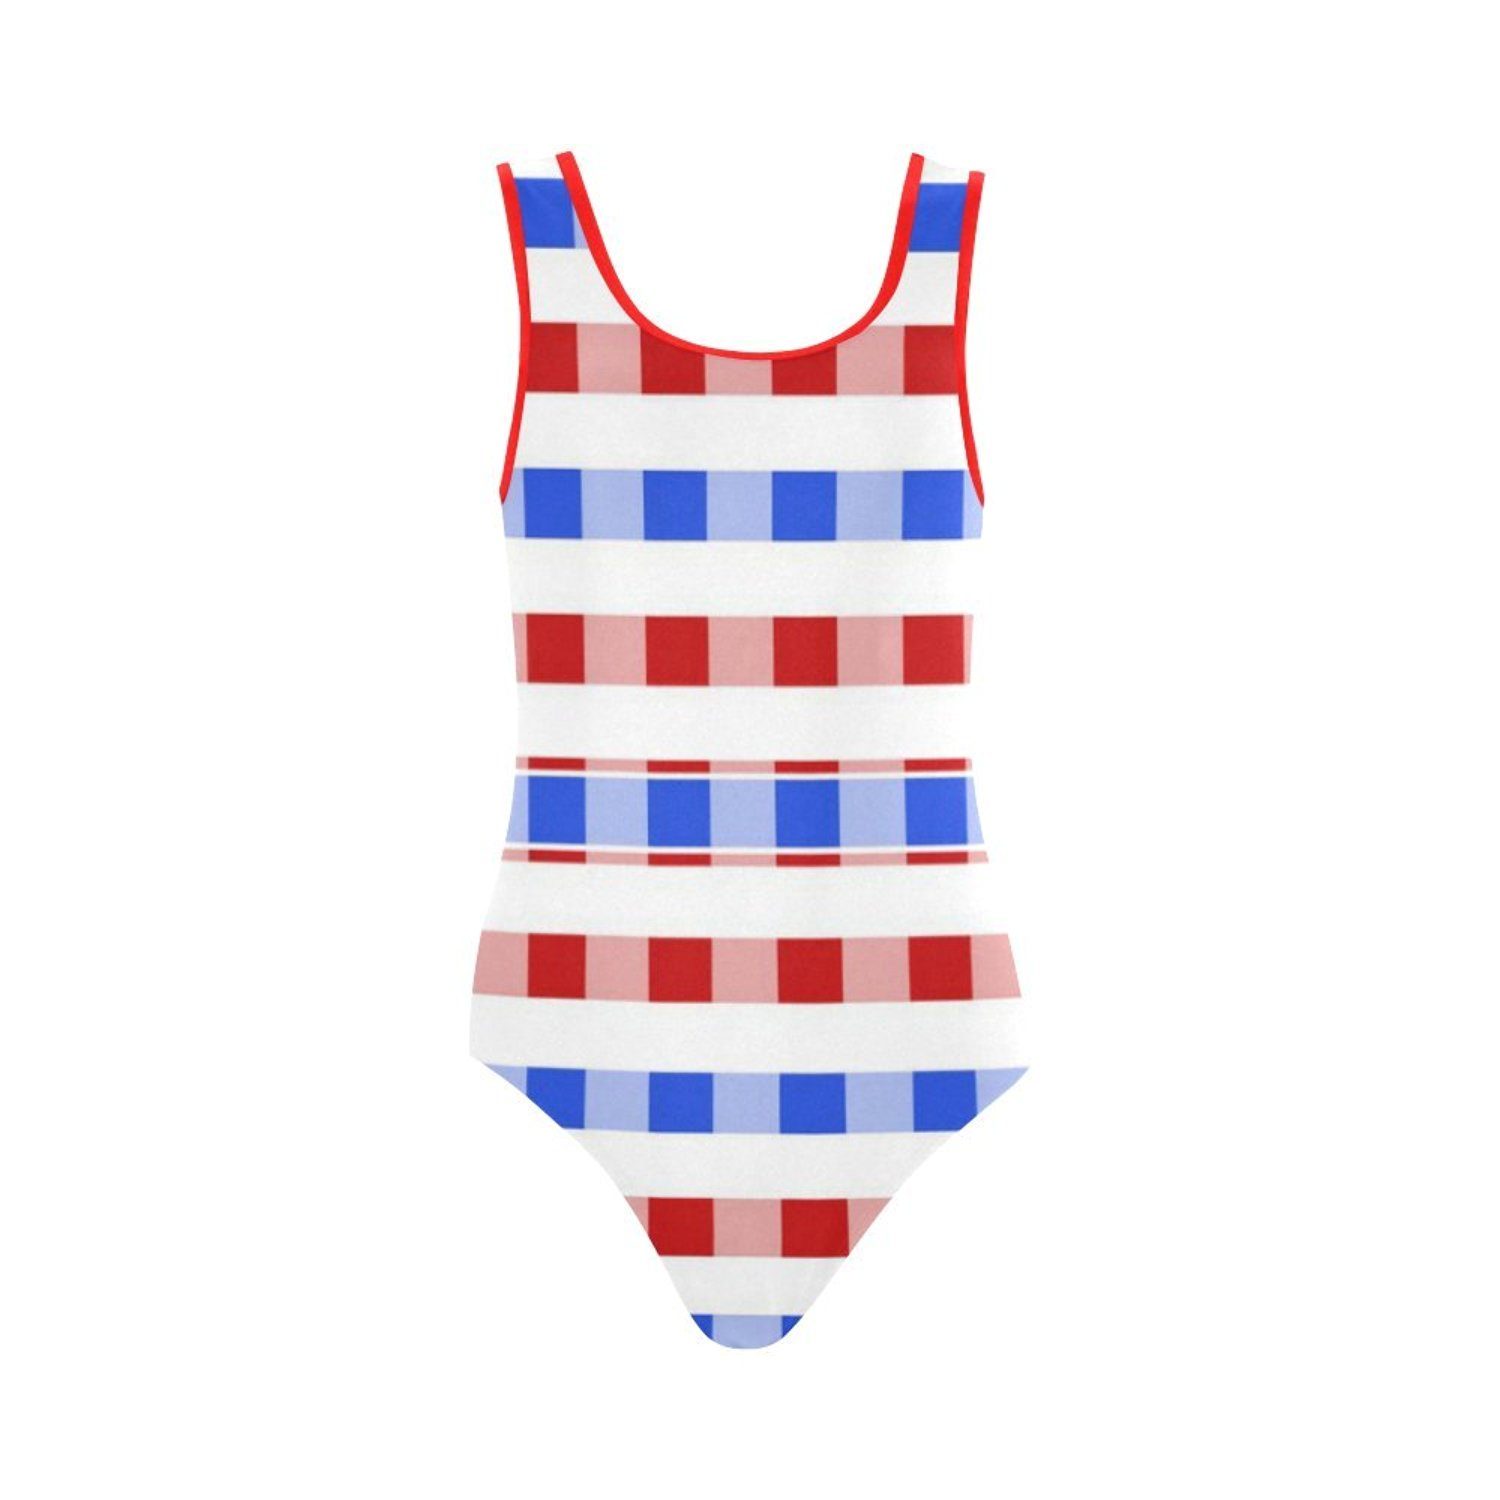 2aef1d2449ba5 Get Quotations · Find Arts Customized Red White Blue Square Pattern Swimsuit  Vest One Piece Swimsuit Bathing Suit Beachwear